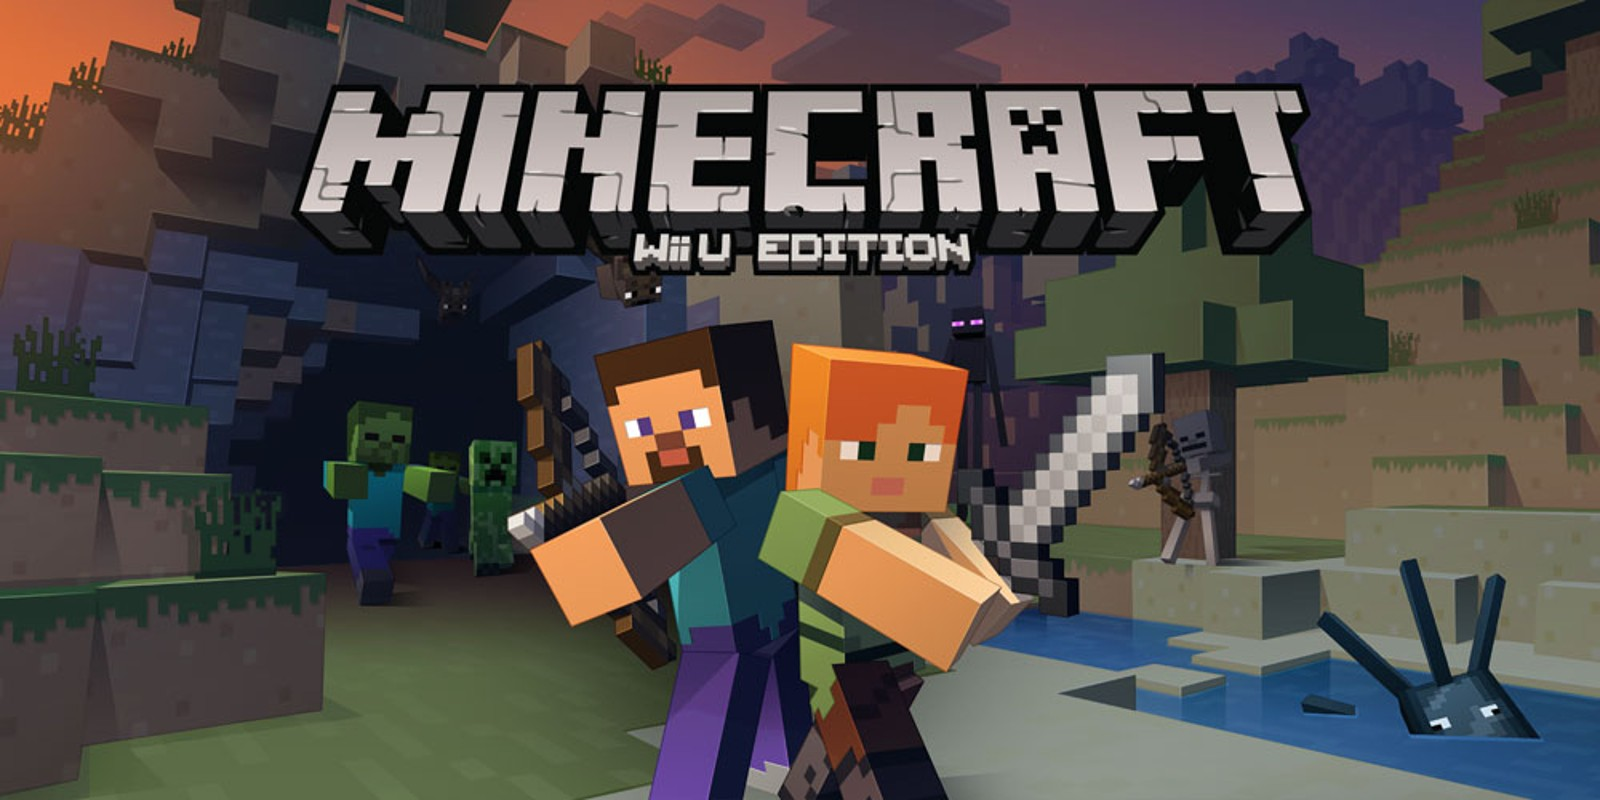 Minecraft Wii U Edition Wii U DownloadSoftware Spiele Nintendo - Minecraft wii u server erstellen deutsch